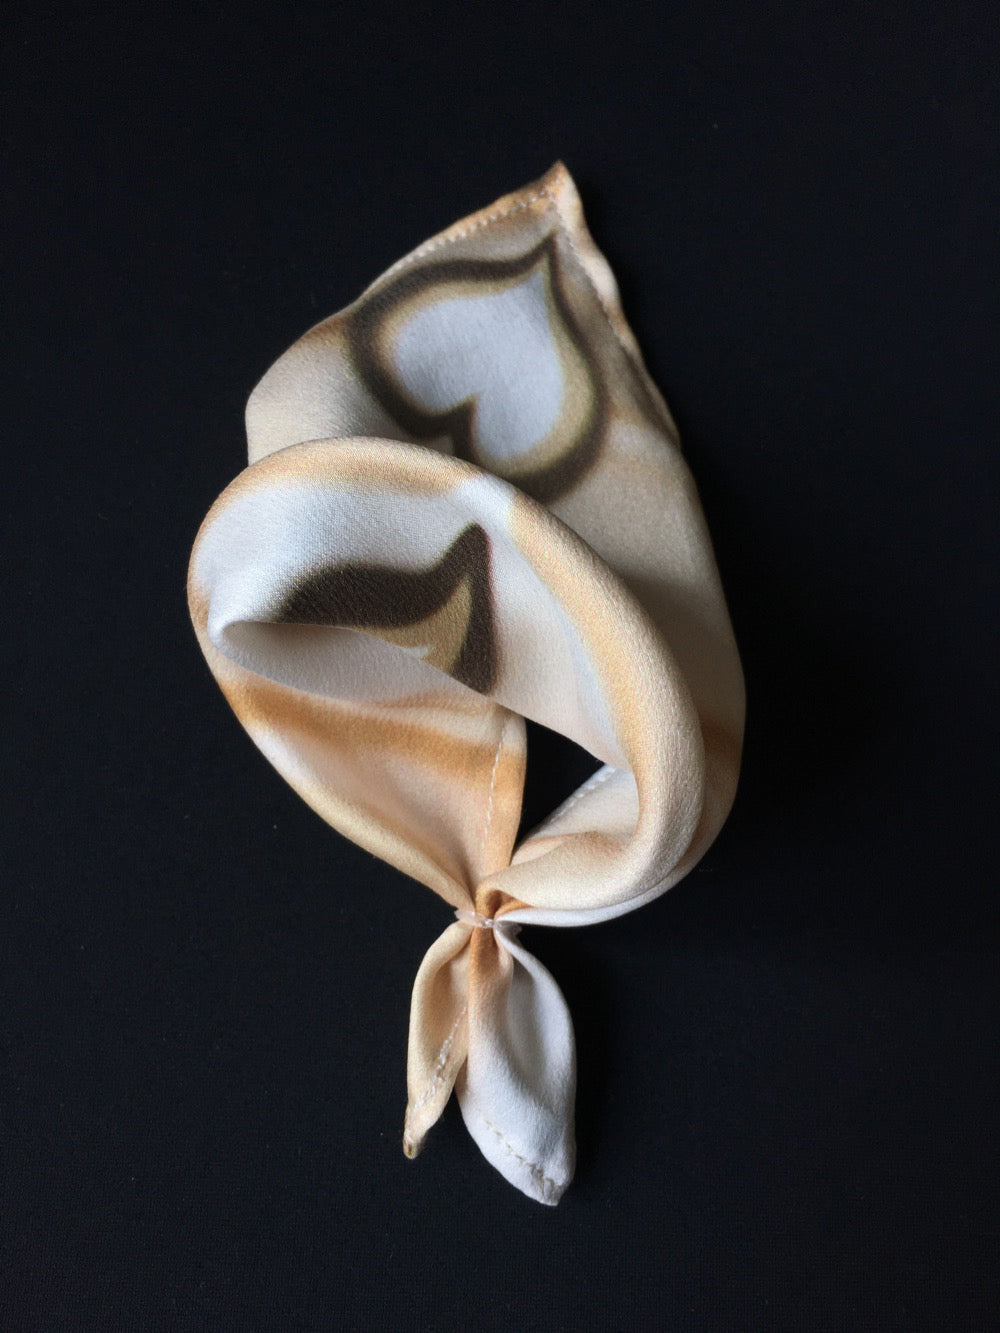 Scarf tied with elastic band